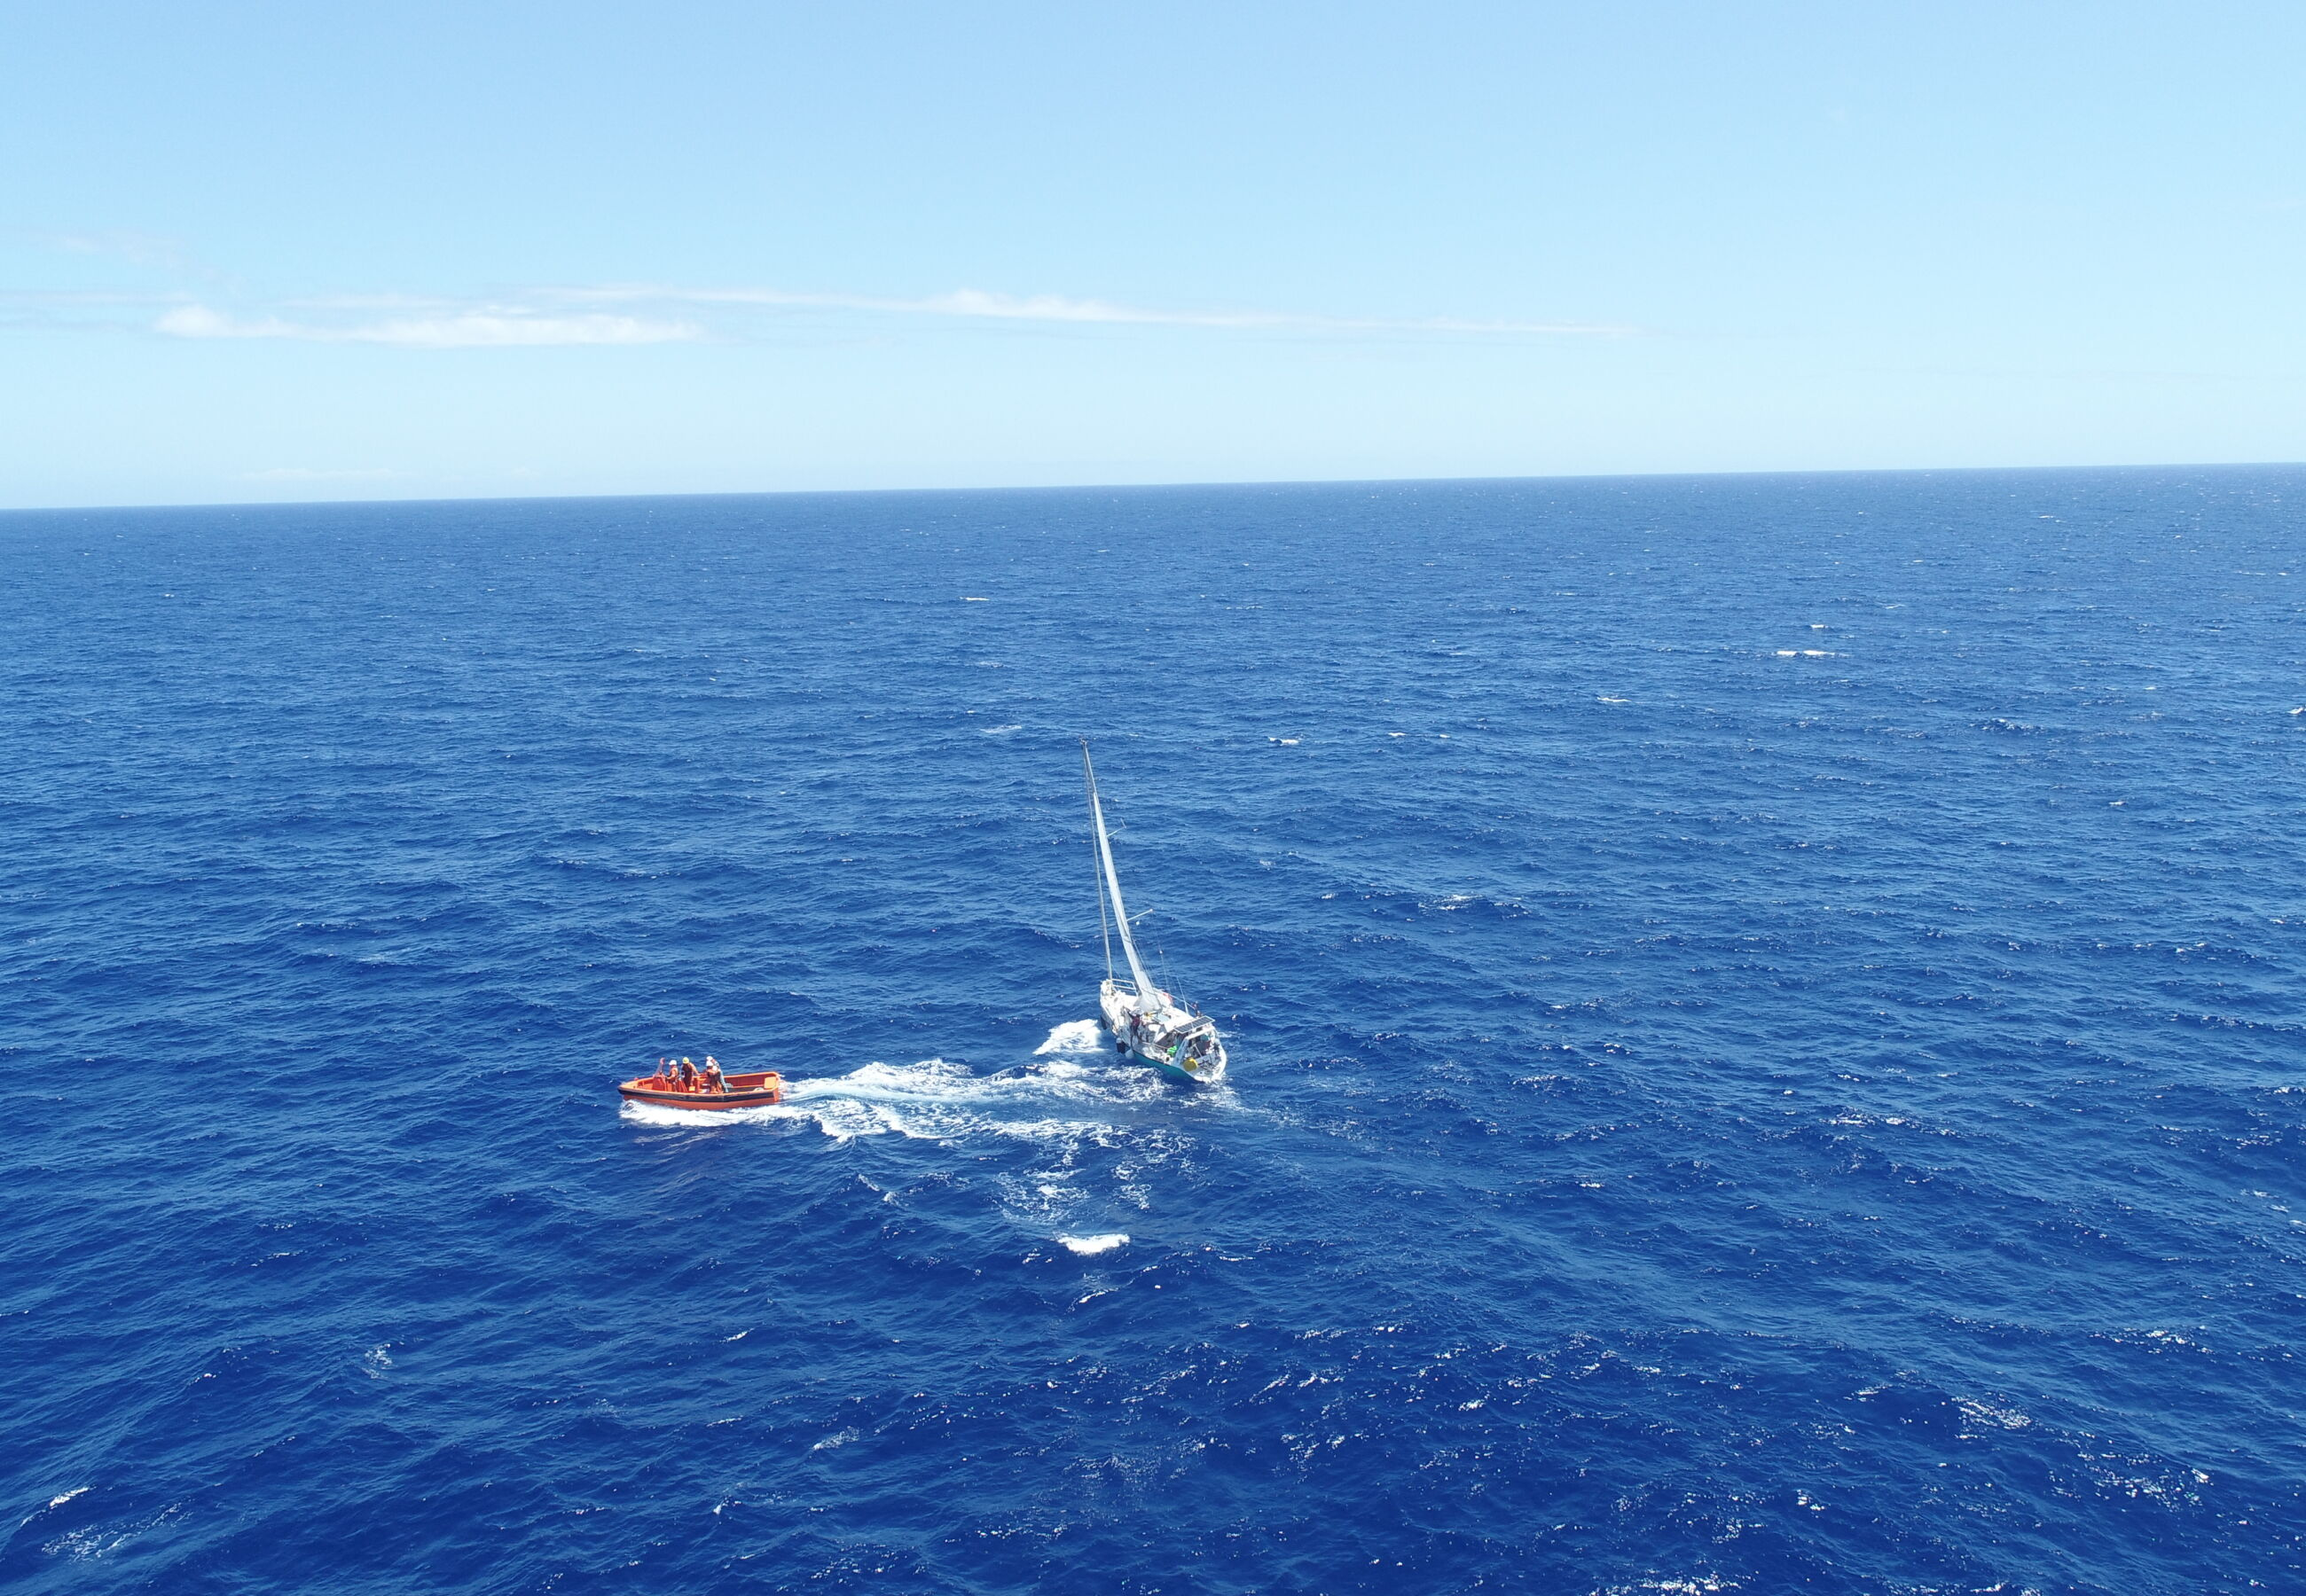 ALP Sweeper assists crew of yacht Jacotte